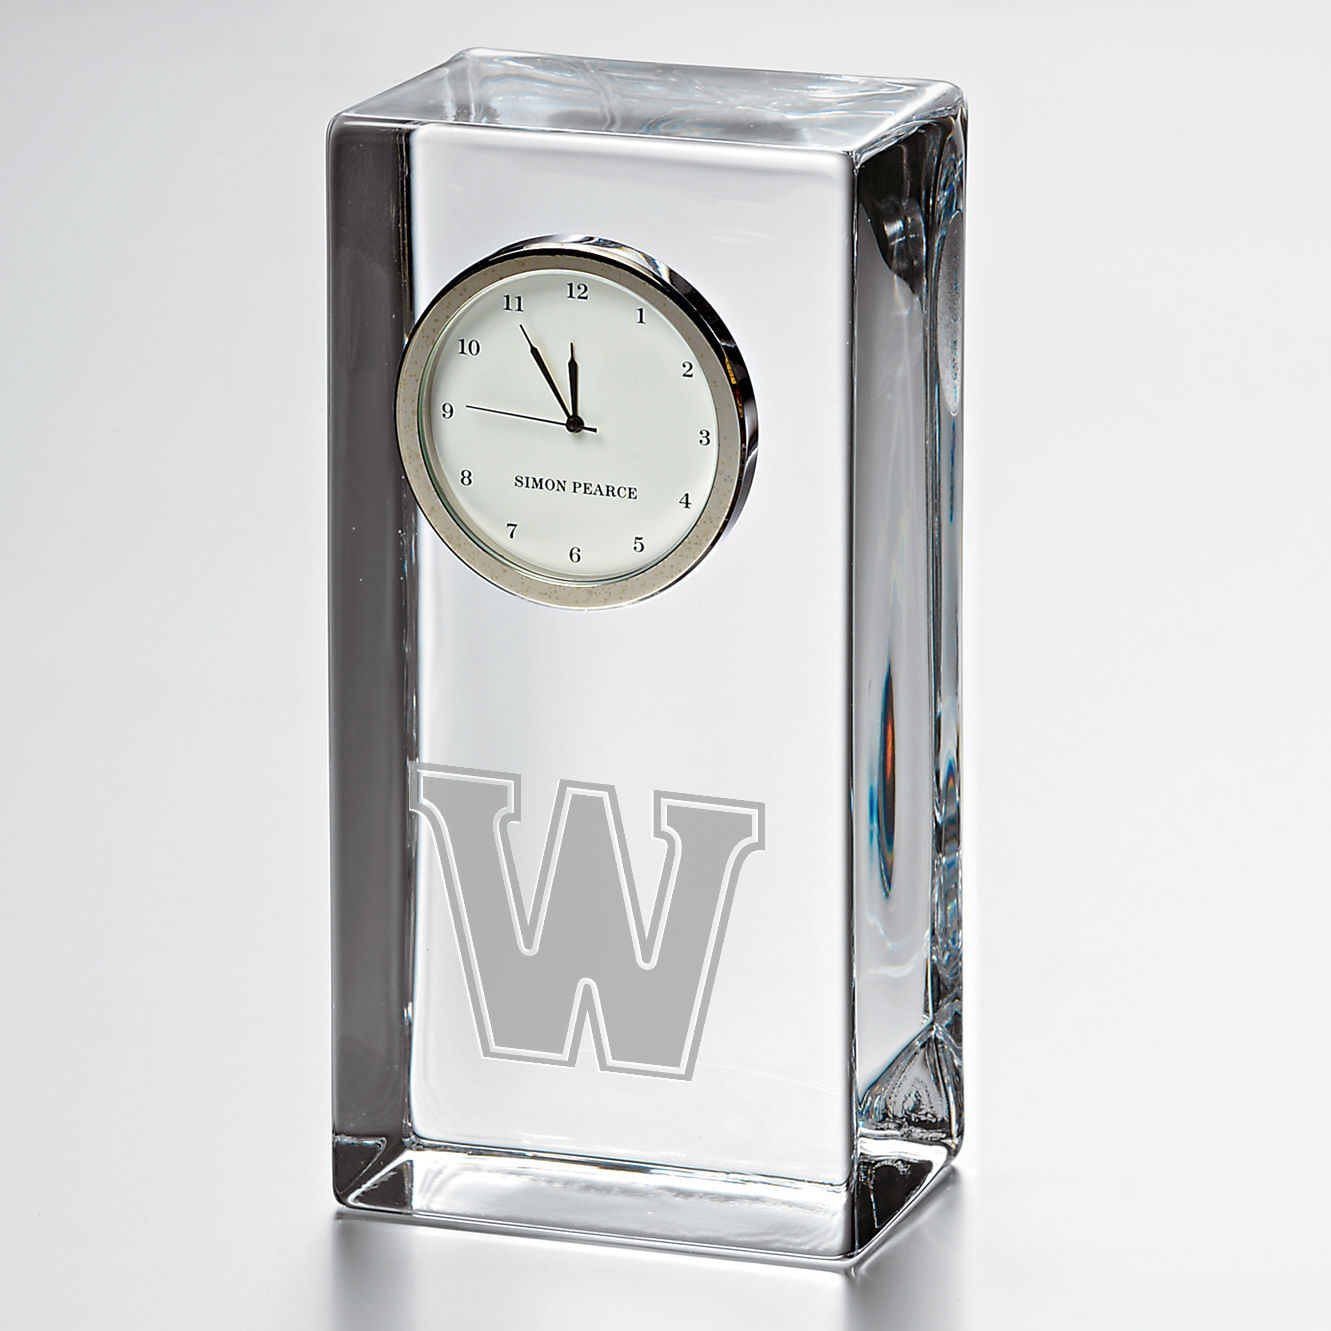 Williams Tall Class Desk Clock by Simon Pearce - Image 1